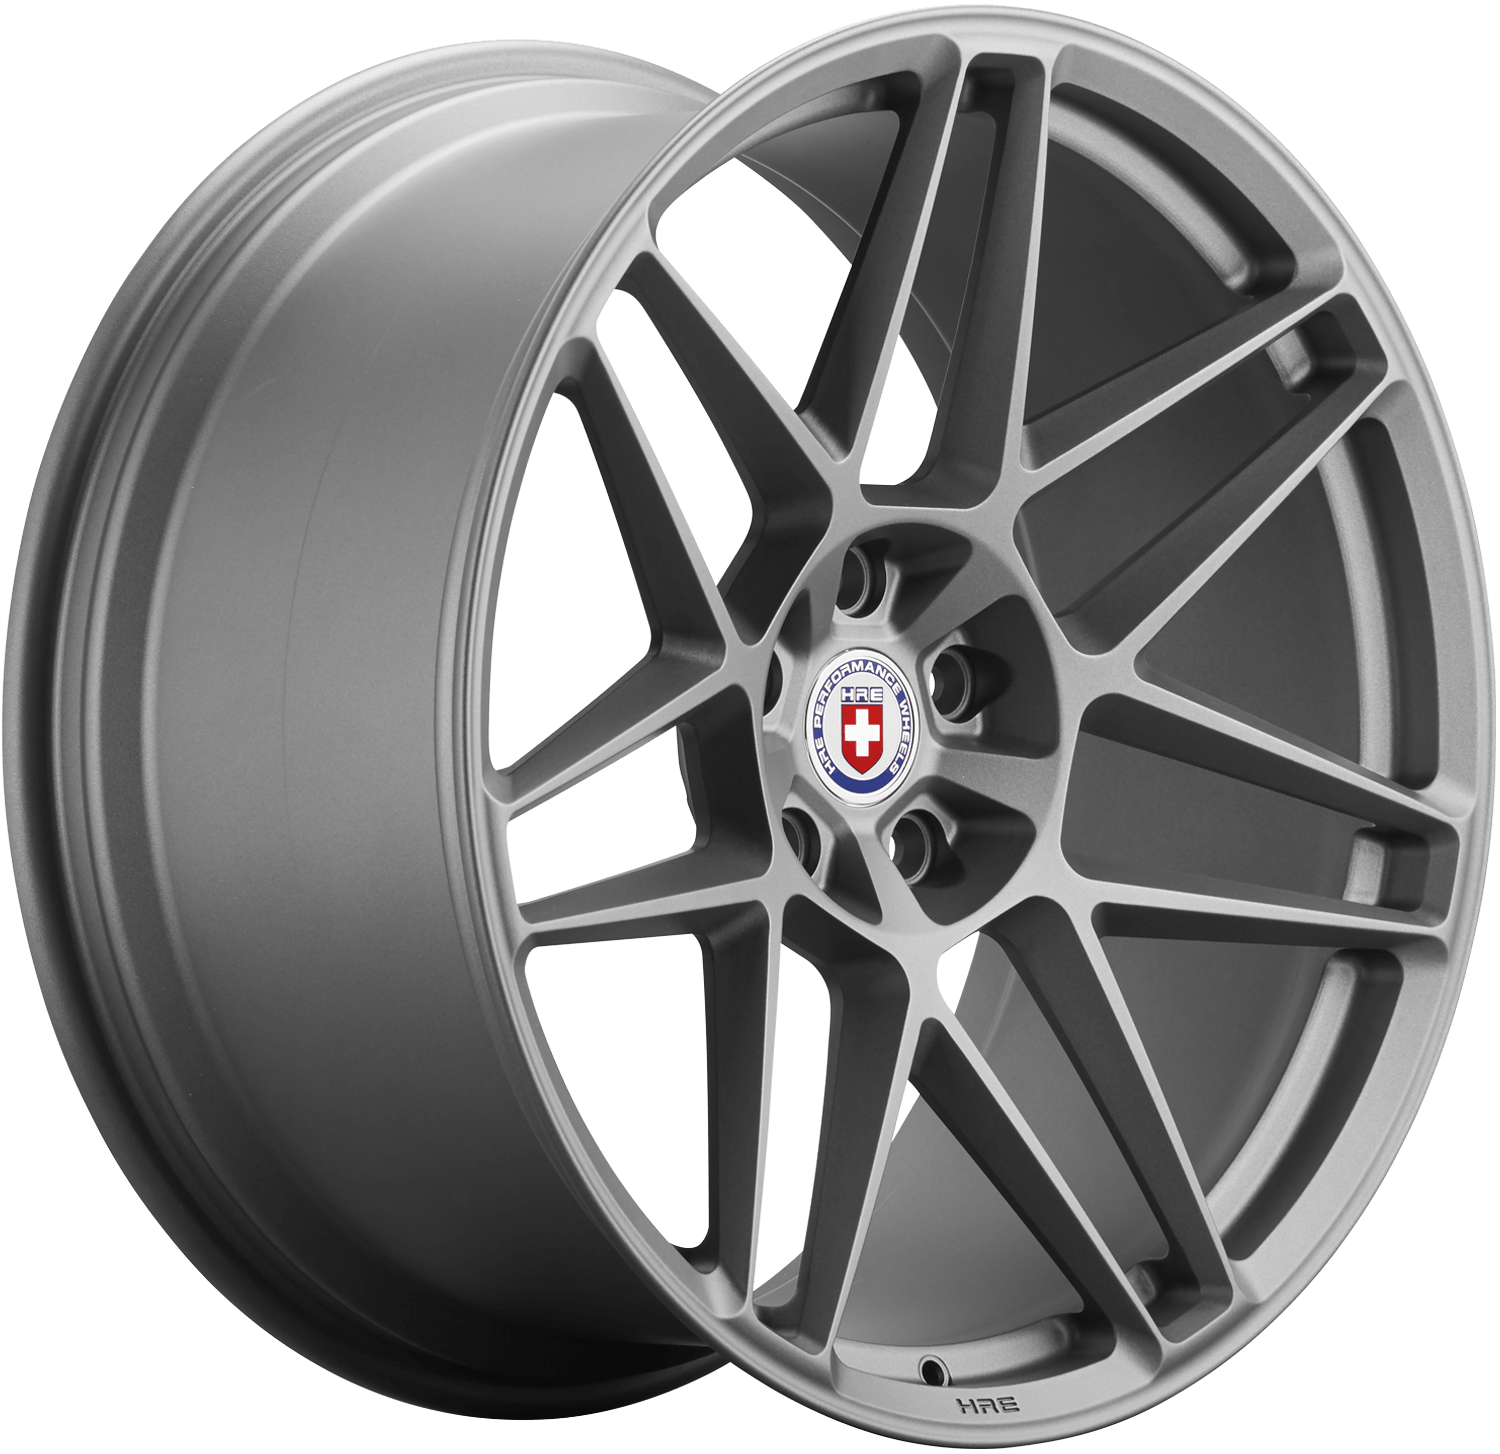 Hre wheels forged rs m authorized dealer elite